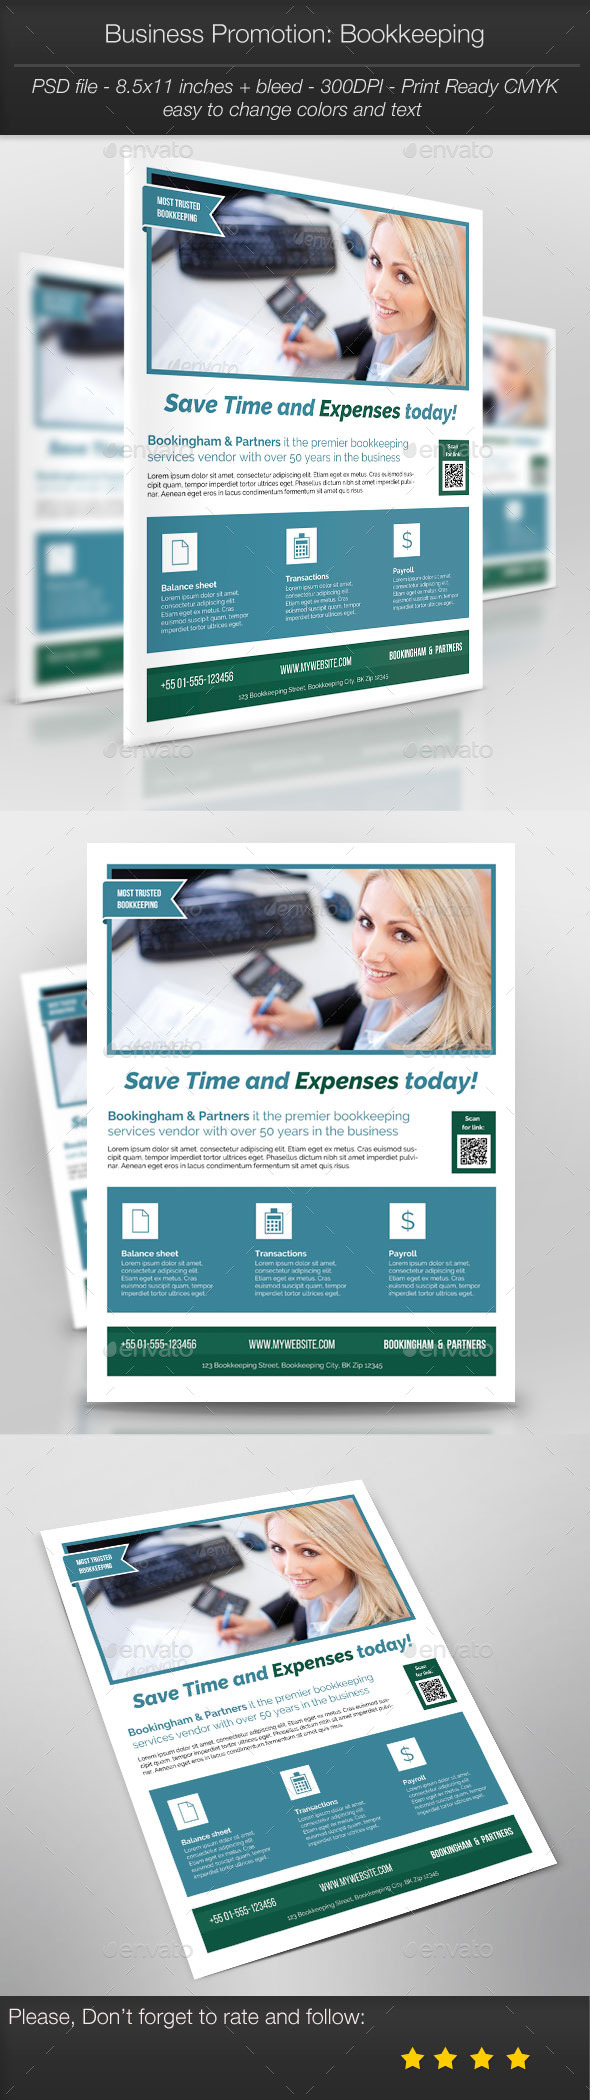 GraphicRiver Business Promotion Bookkeeping 10331587